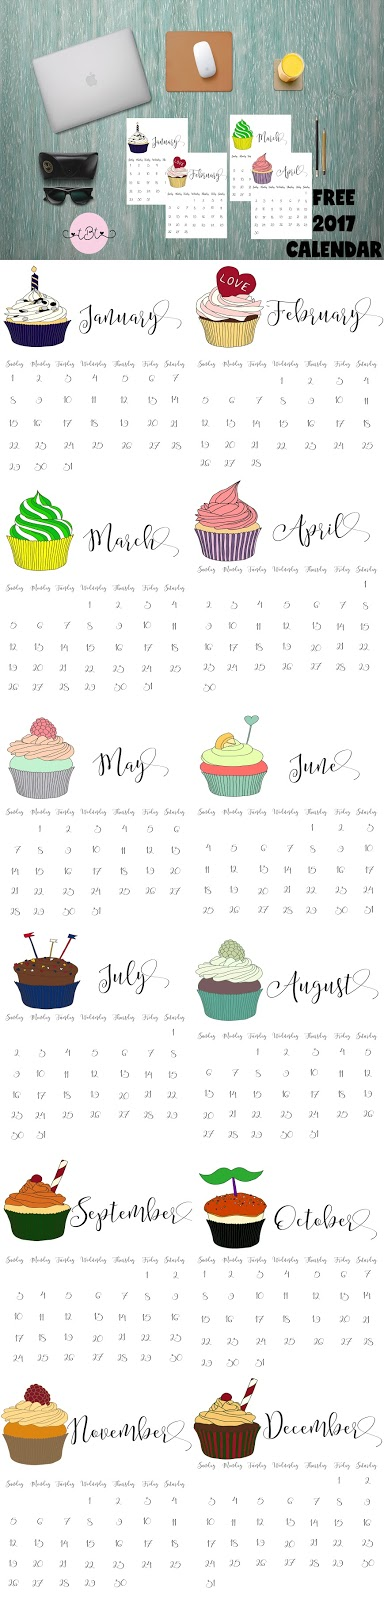 Tailored By Tiera 3 Free Printable 2017 Calendars